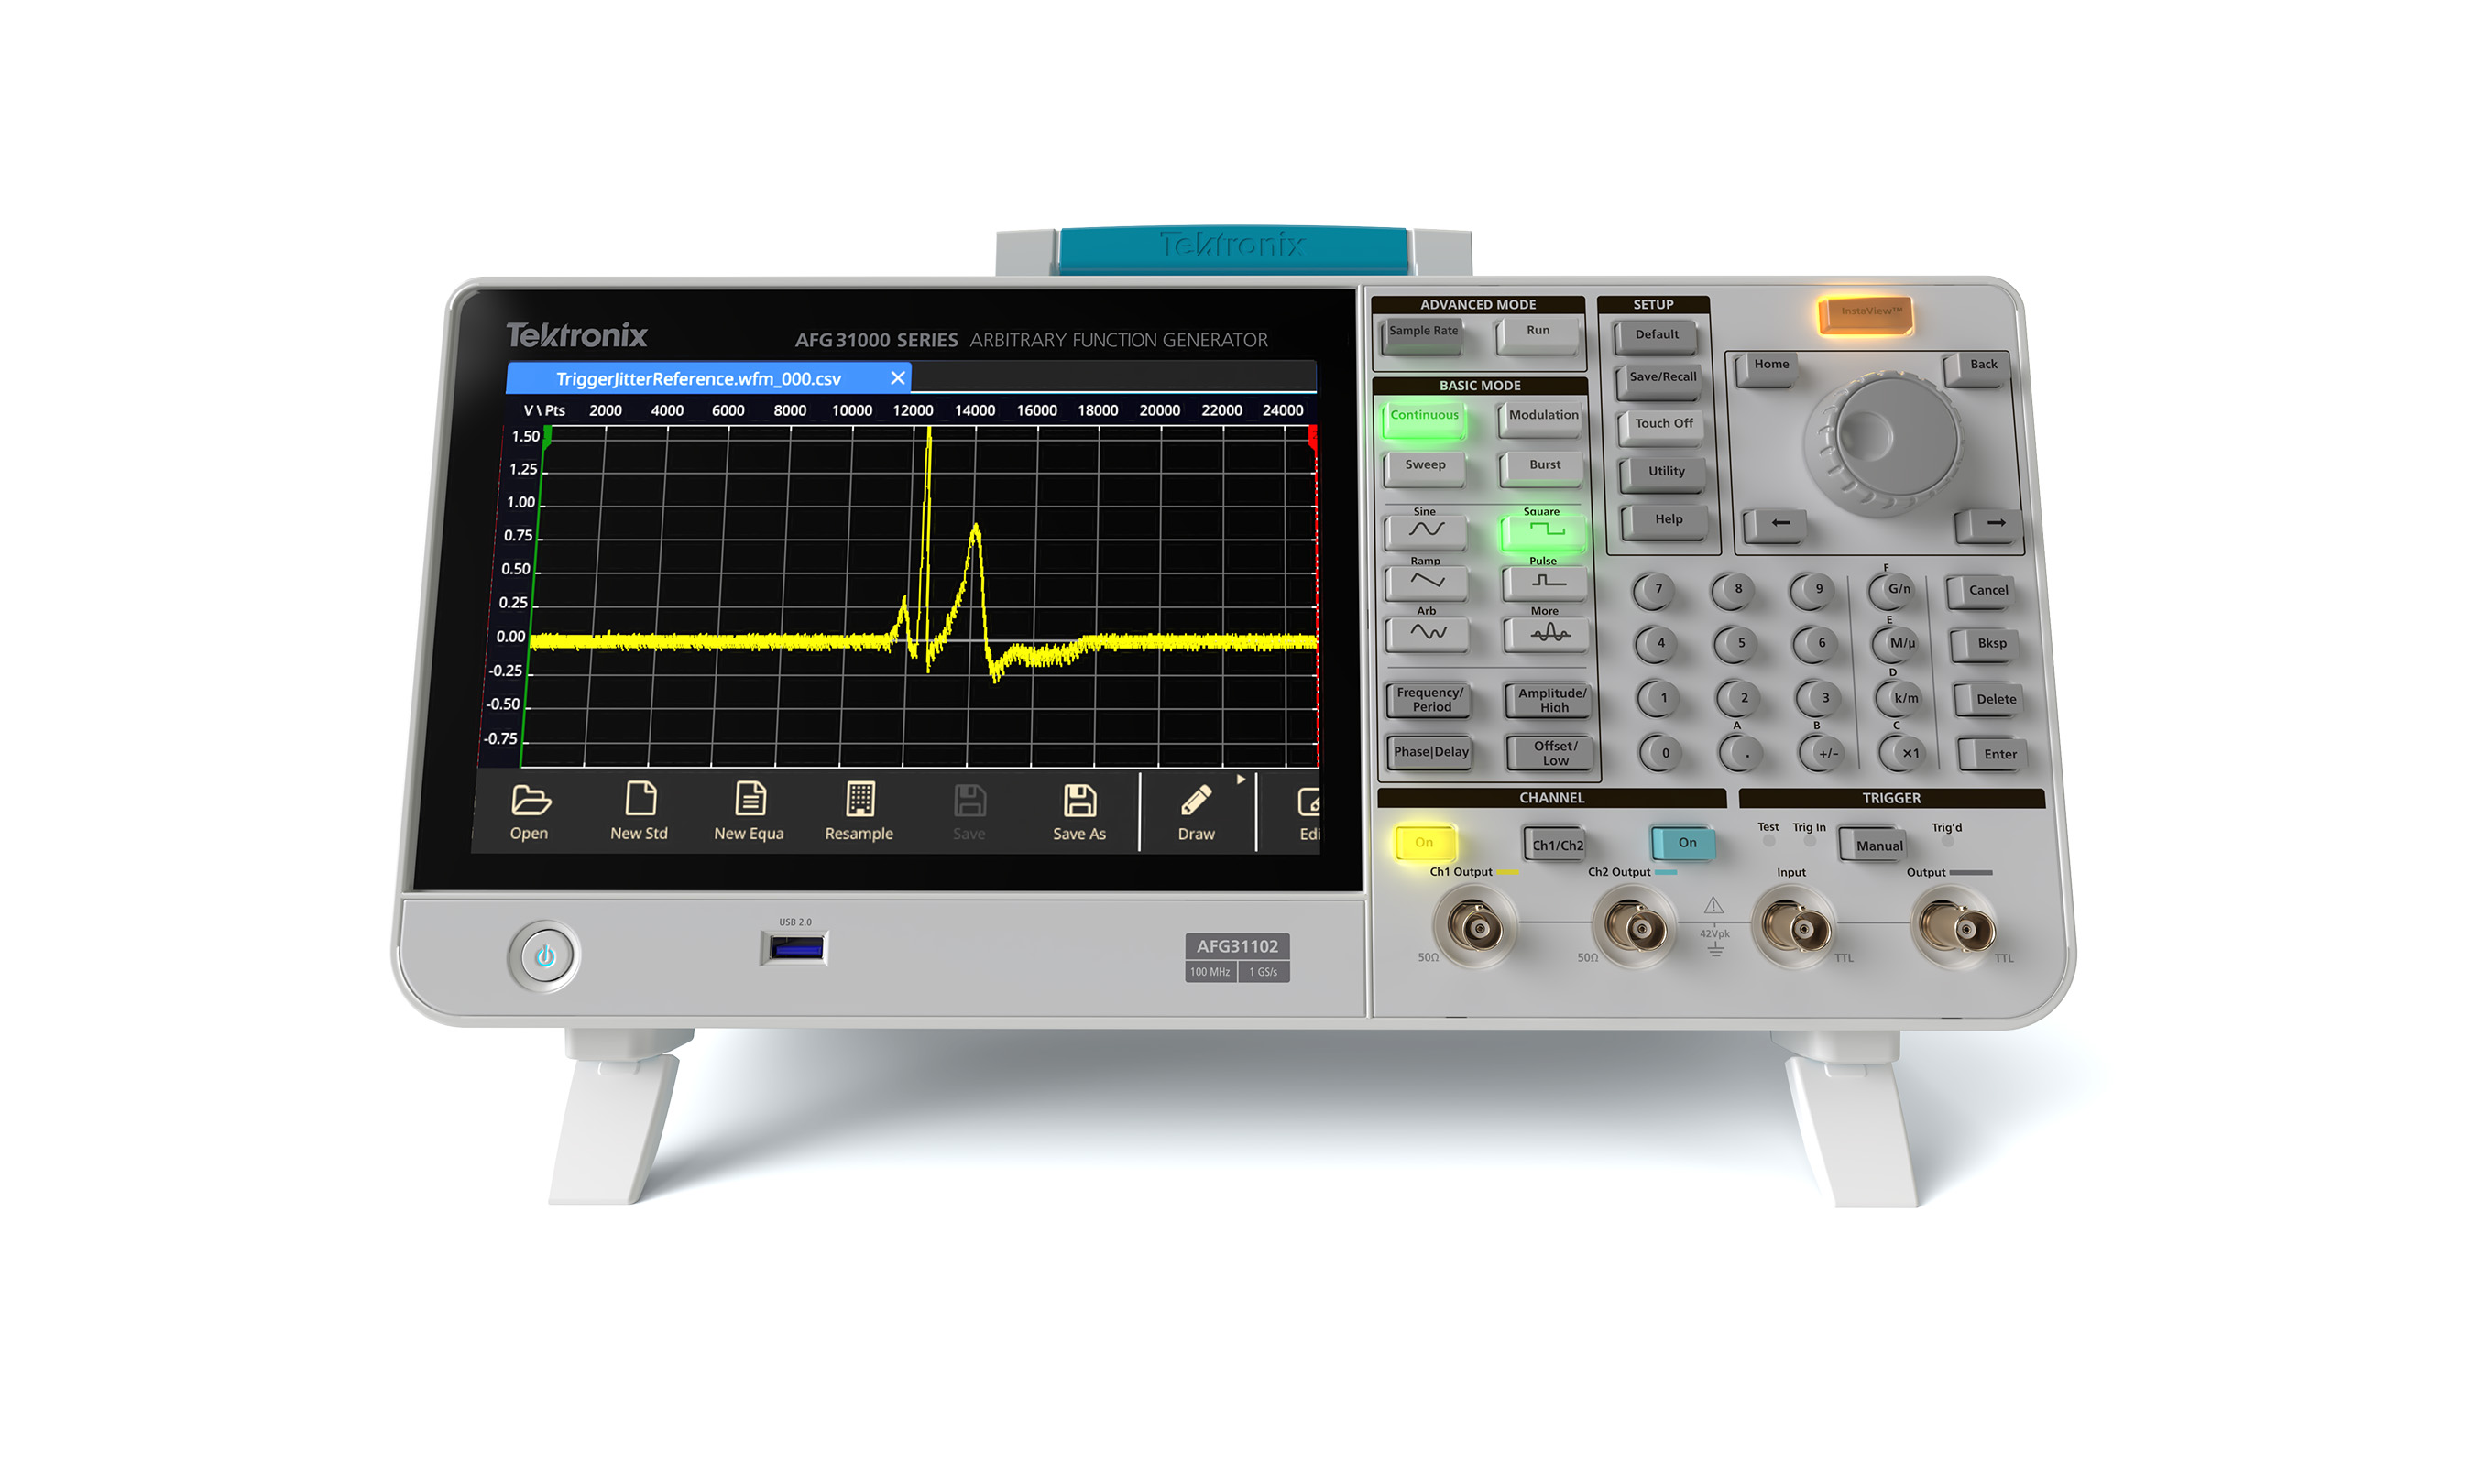 The AFG31000 Series is a high-performance AFG with built-in arbitrary waveform generation, real-time wave monitoring, and the largest screen on the market.